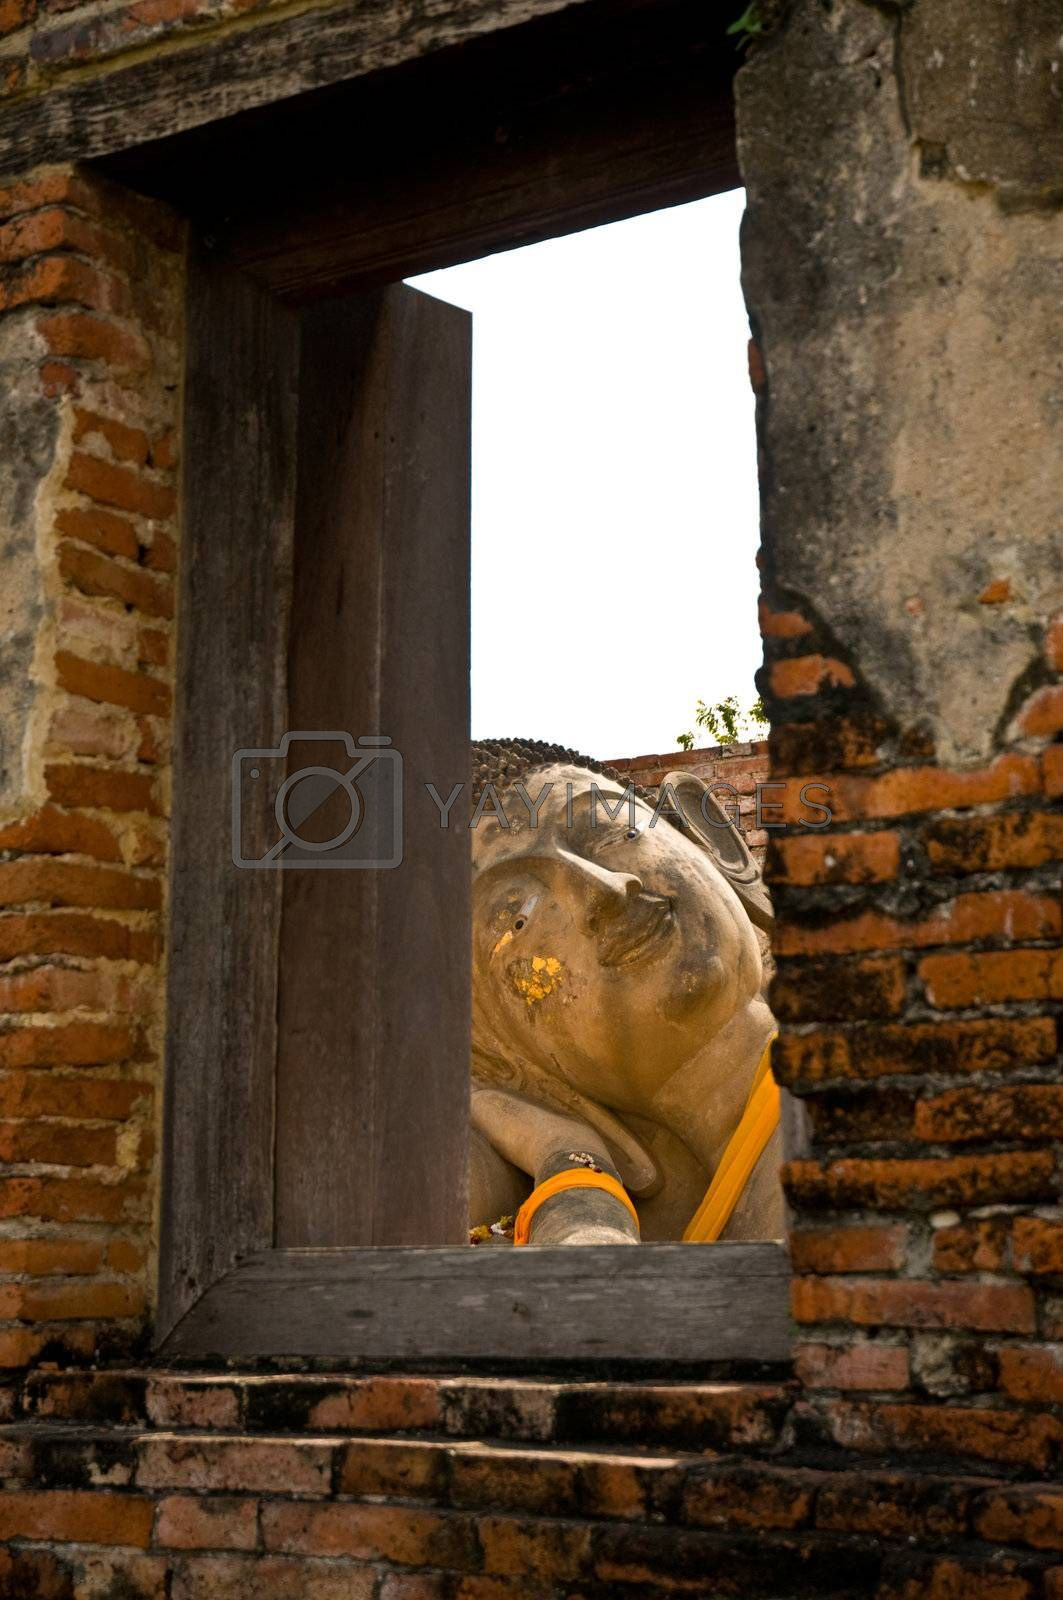 Reclining Buddha, view through a window with a wooden frame. Ayutthaya city is the capital of Ayutthaya province in Thailand. Its historical park is a UNESCO world heritage.